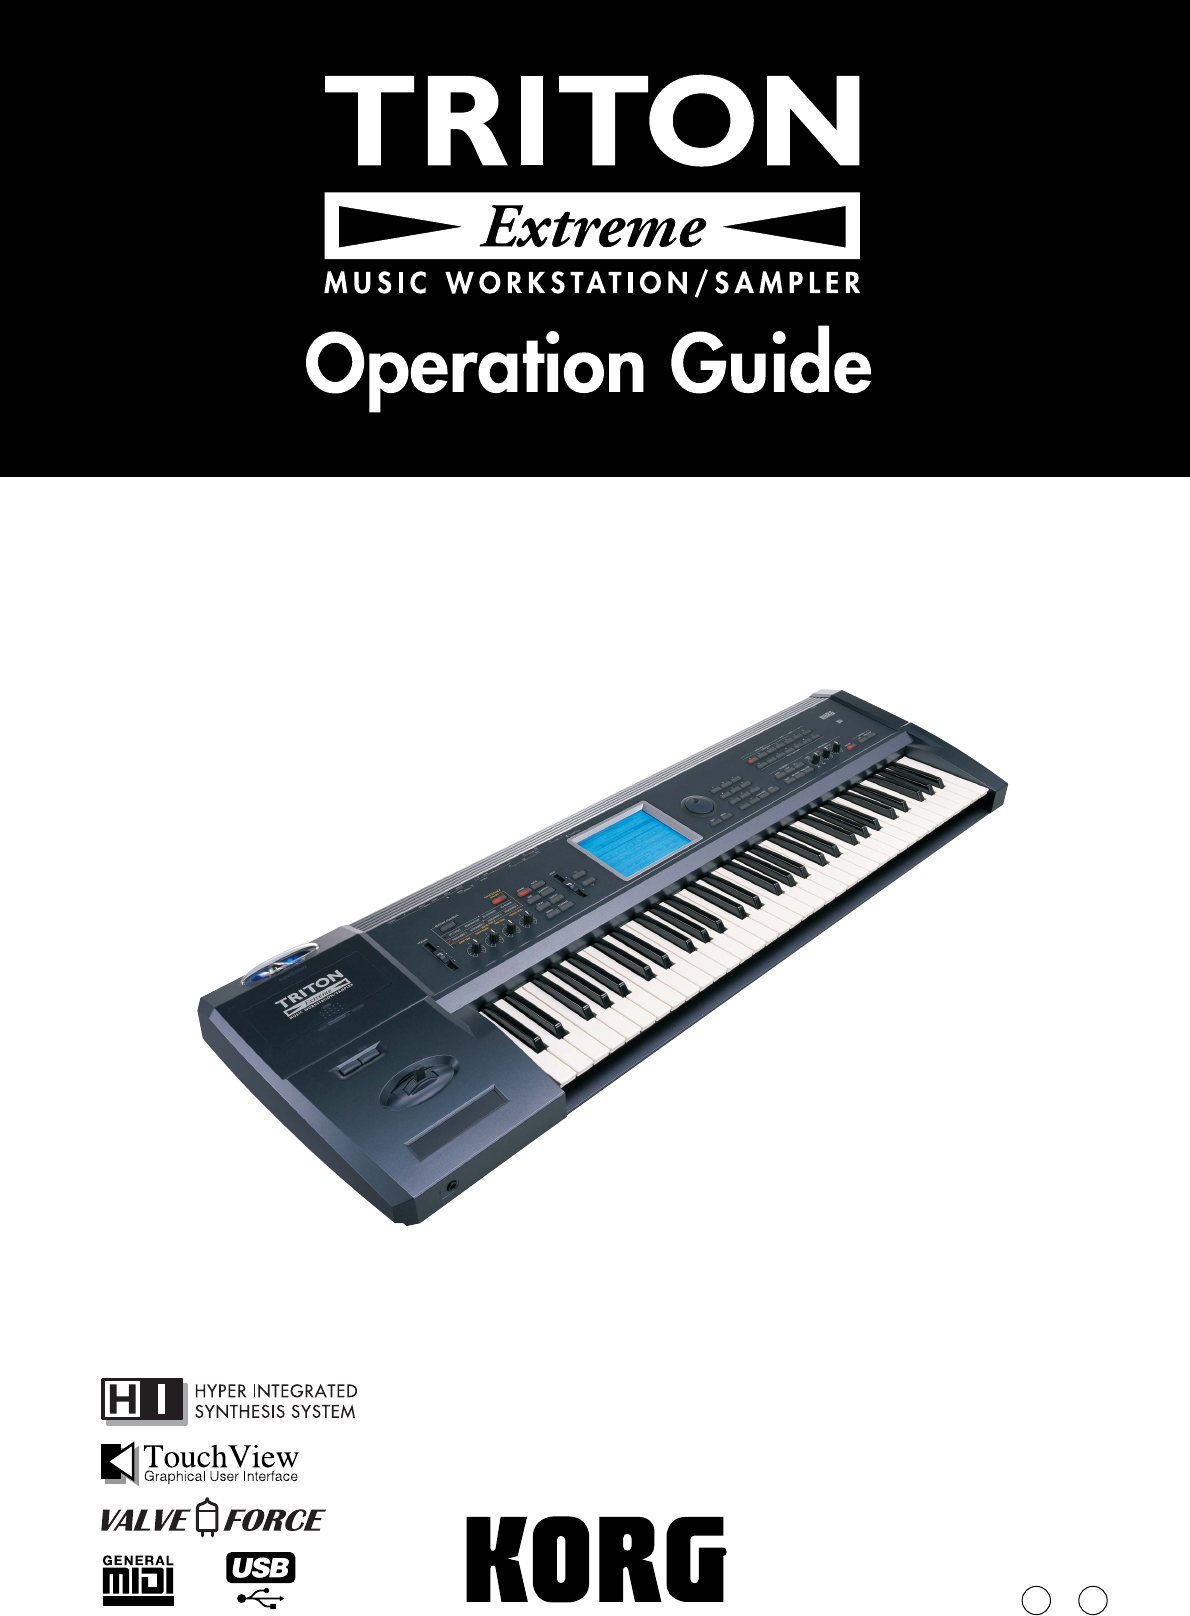 Korg musical instrument music workstationsampler user guide korg musical instrument music workstationsampler user guide manualsonline publicscrutiny Image collections